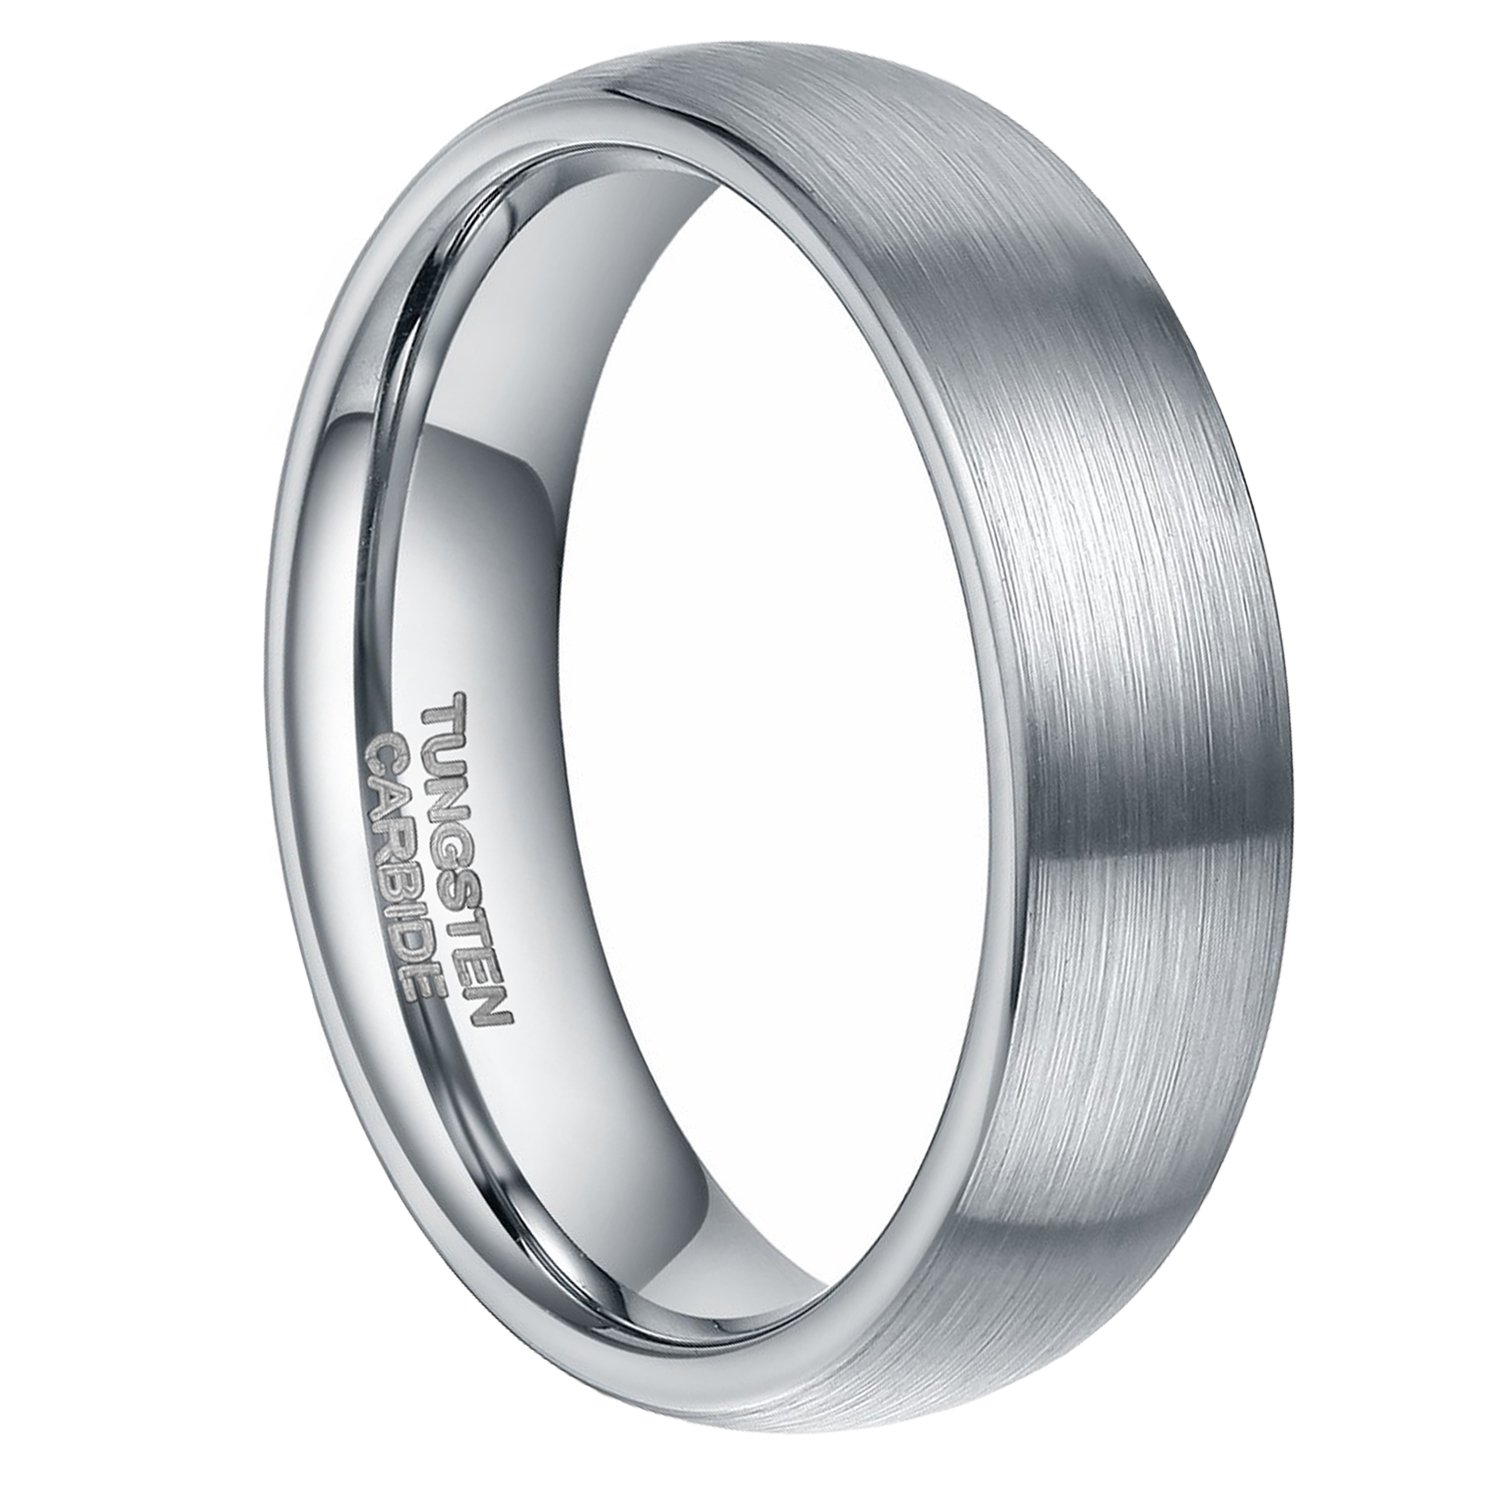 Greenpod 6mm Tungsten Carbide Wedding Band Ring Domed Round Brushed Comfort Fit Size 6